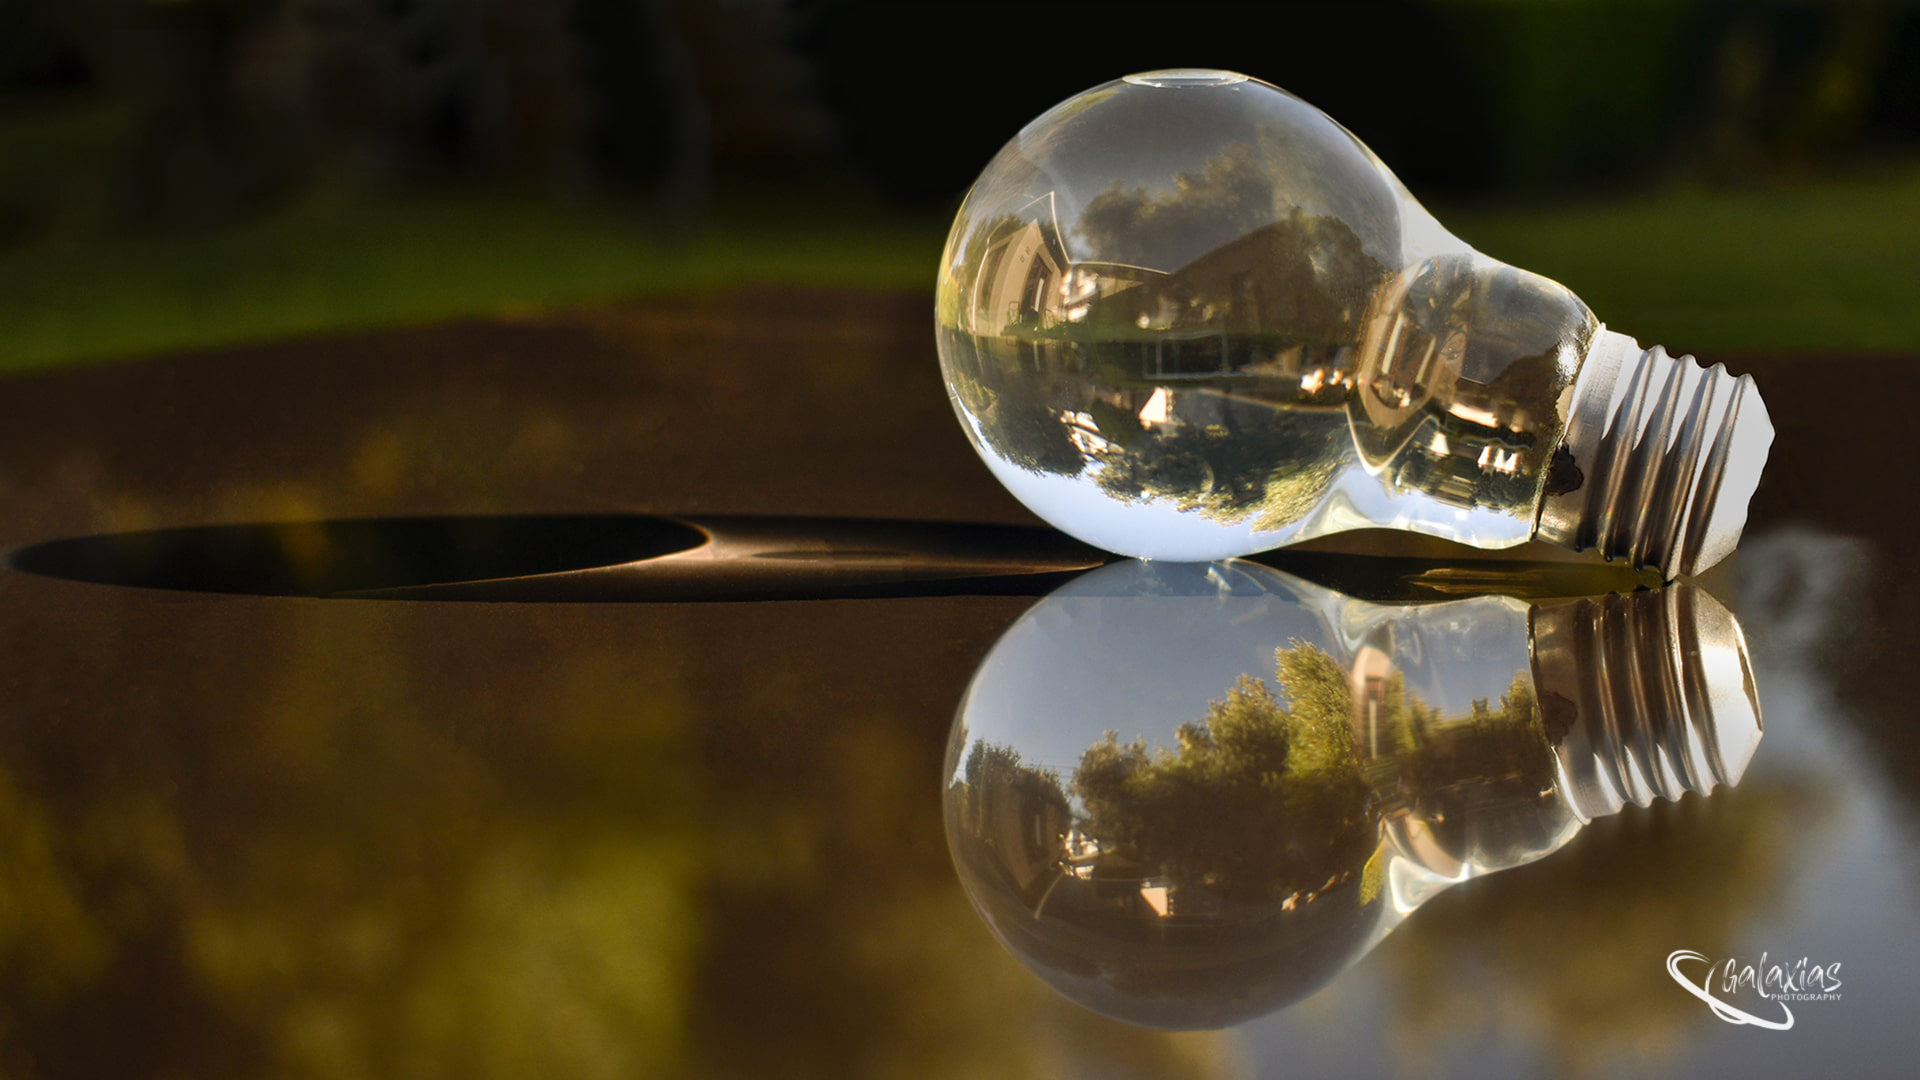 Light bulb with Water, photographed by Galaxias Photography, Pretoria East, South Africa